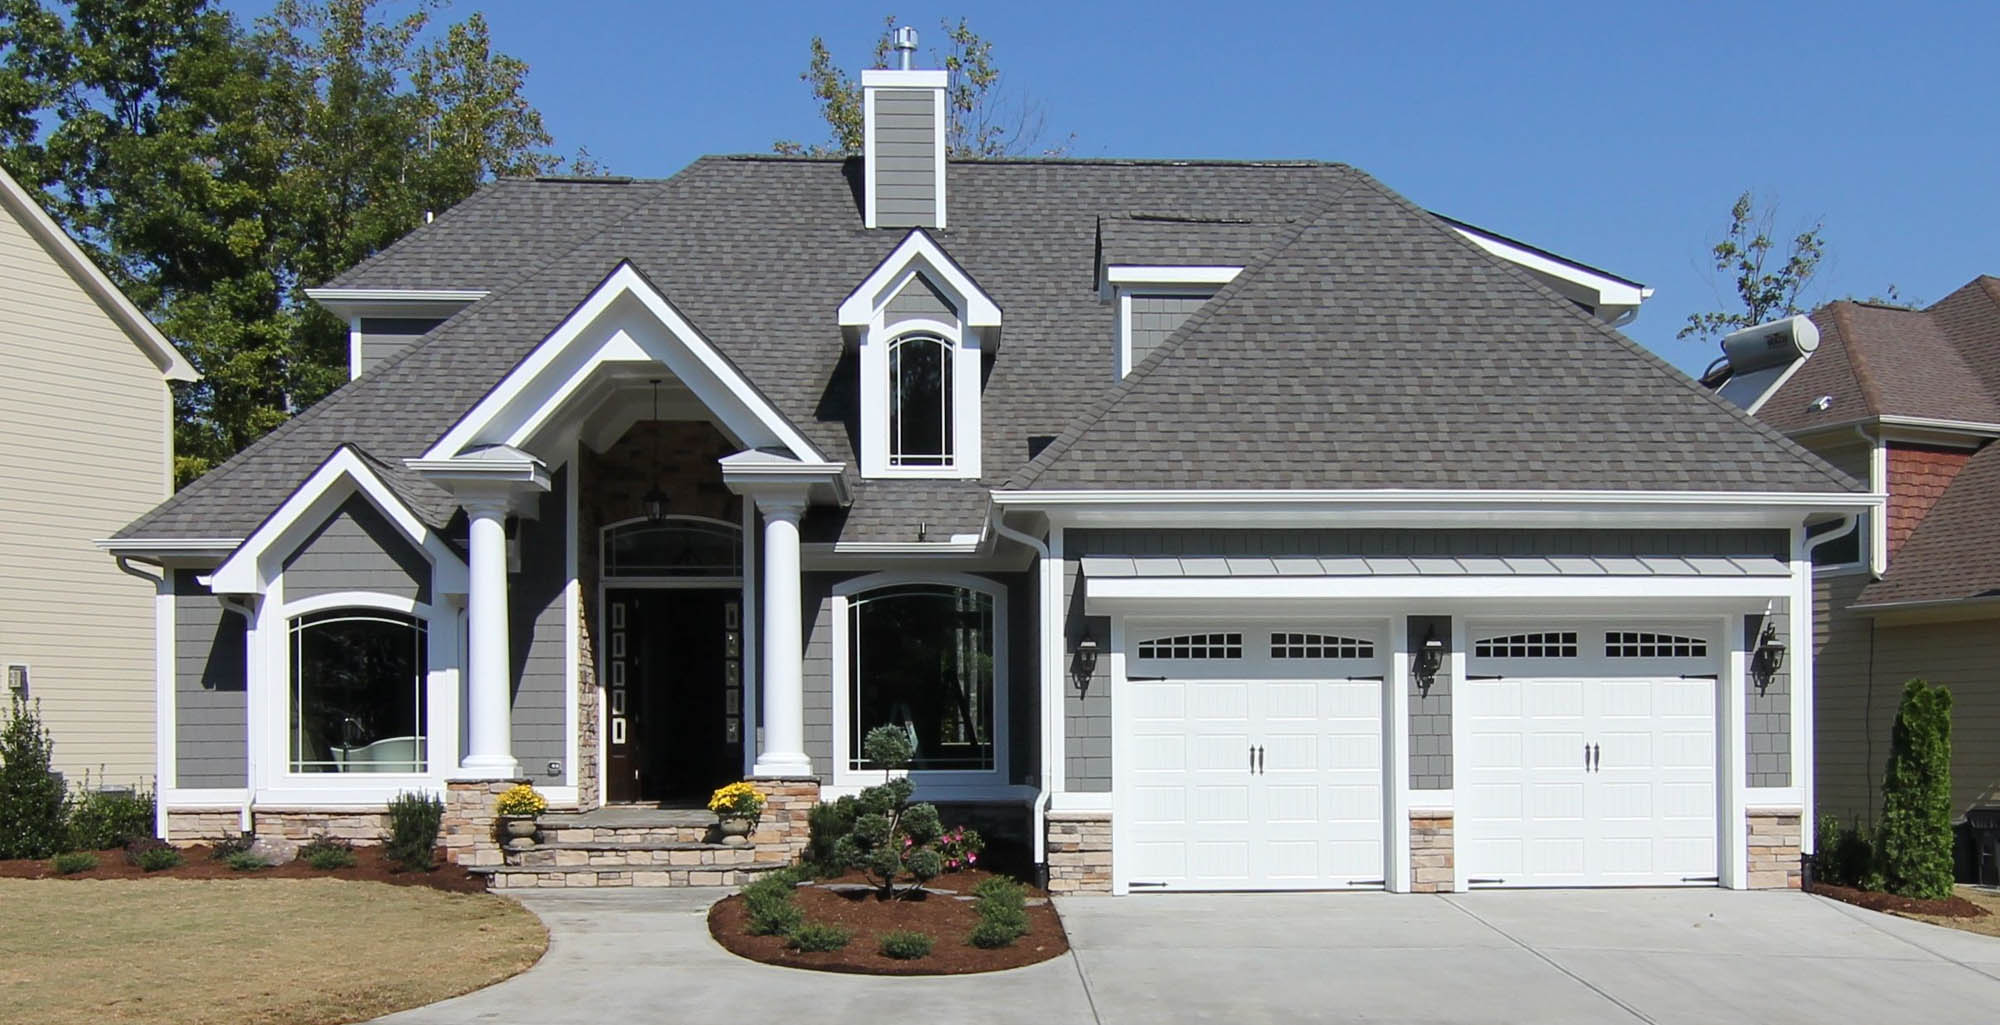 small house color schemes - gray siding with stone metal roof and columns